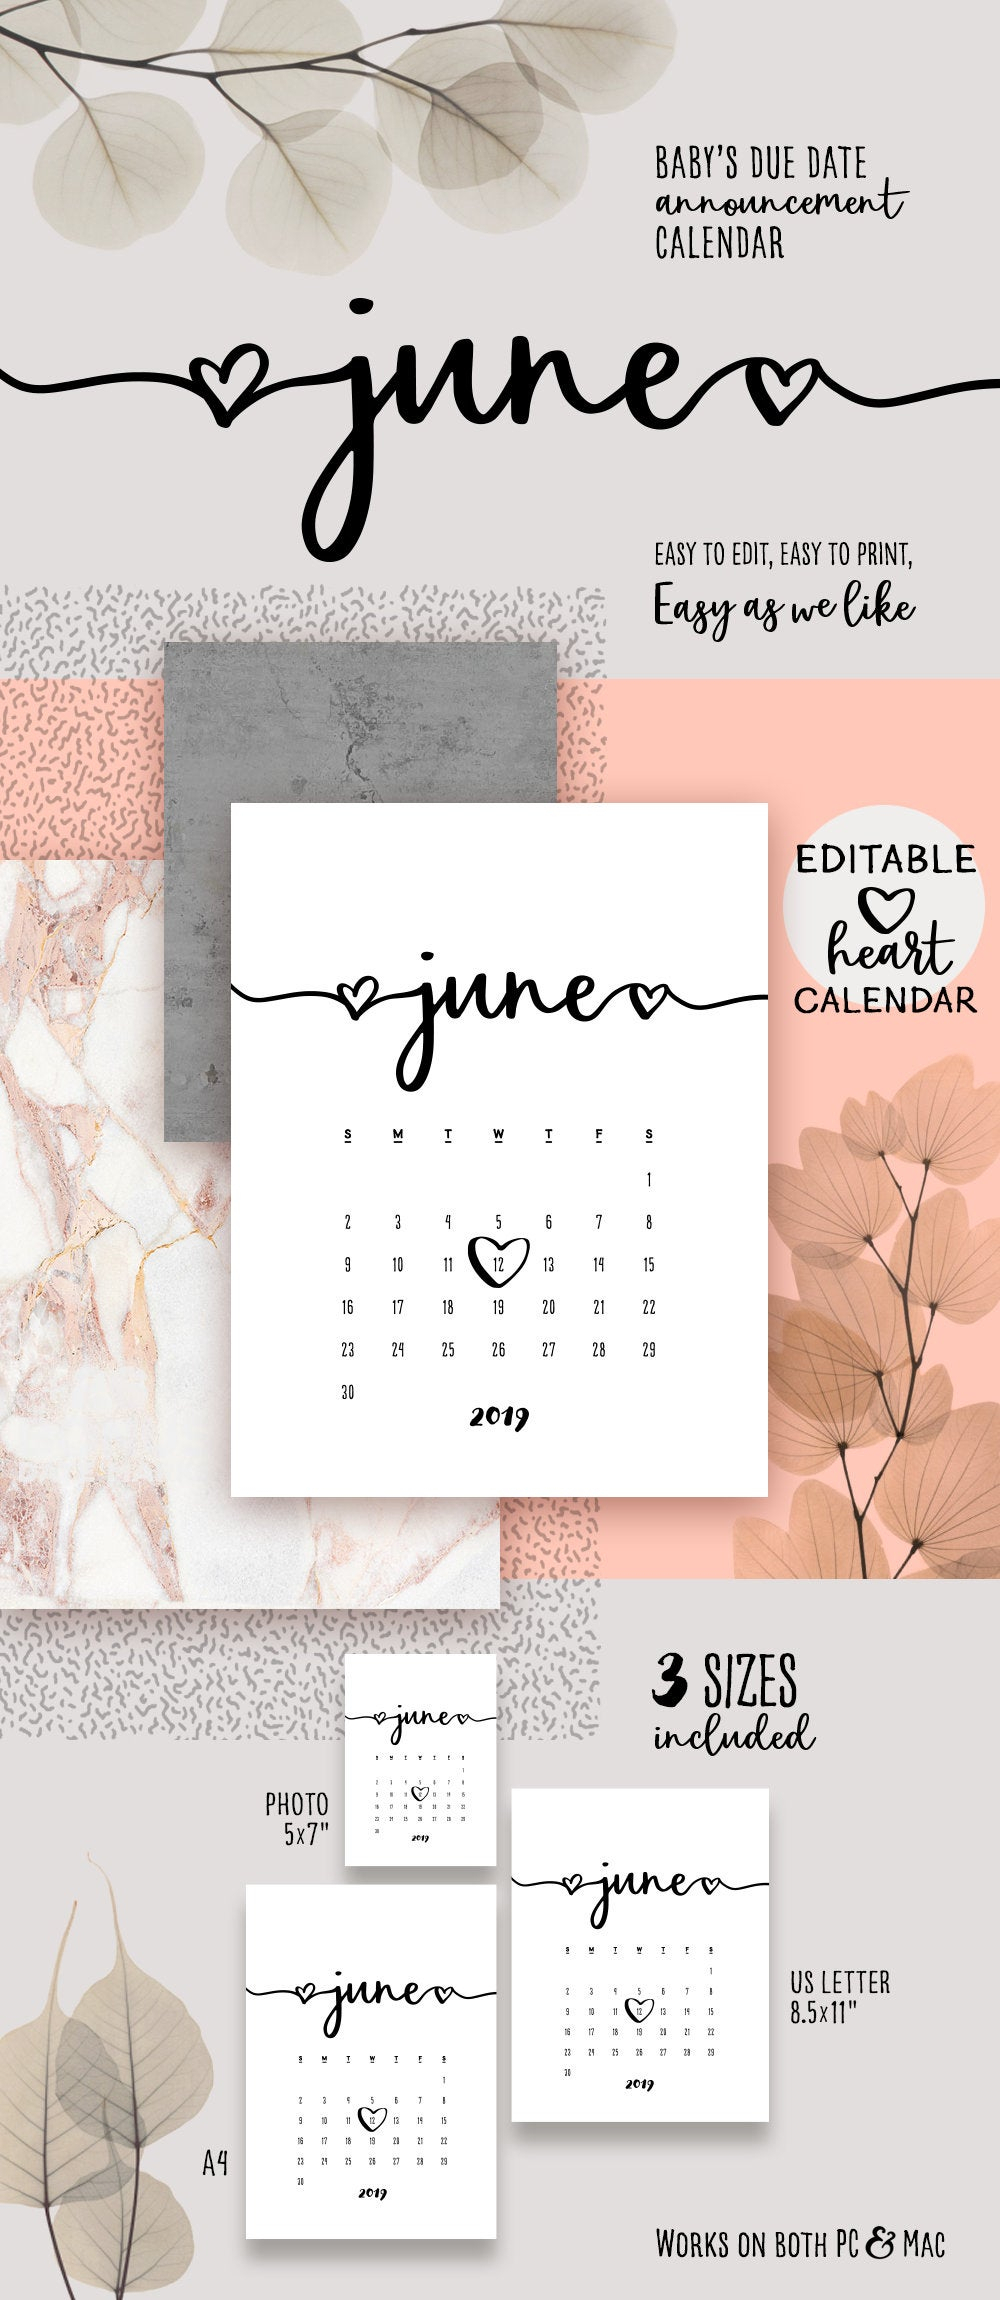 June 2019 Printable Pregnancy Calendar Template Lovely Baby Due Date  Announcement Pregnancy Calendar Pdf Baby Announce Diy Editable Calendar inside Free Printable Due Date Calendar